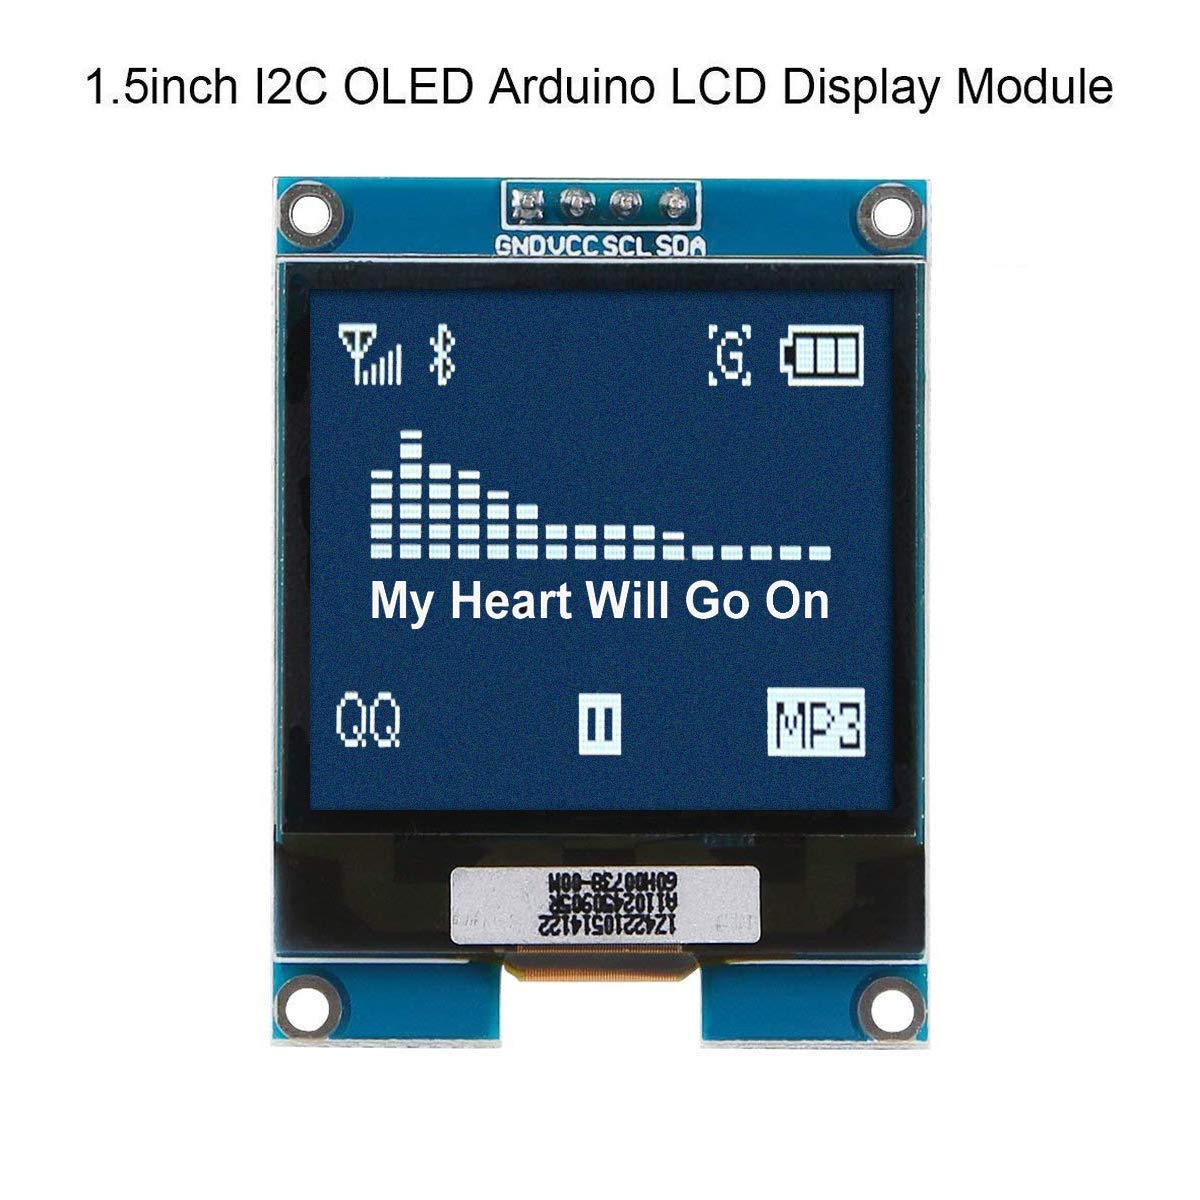 MakerHawk I2C OLED Display Module 1 5 Inch OLED Module Arduino LCD Display  SSD1327 Driver Chip, 128x128 Pixels, 16-bit Grey Level with I2C Interface,